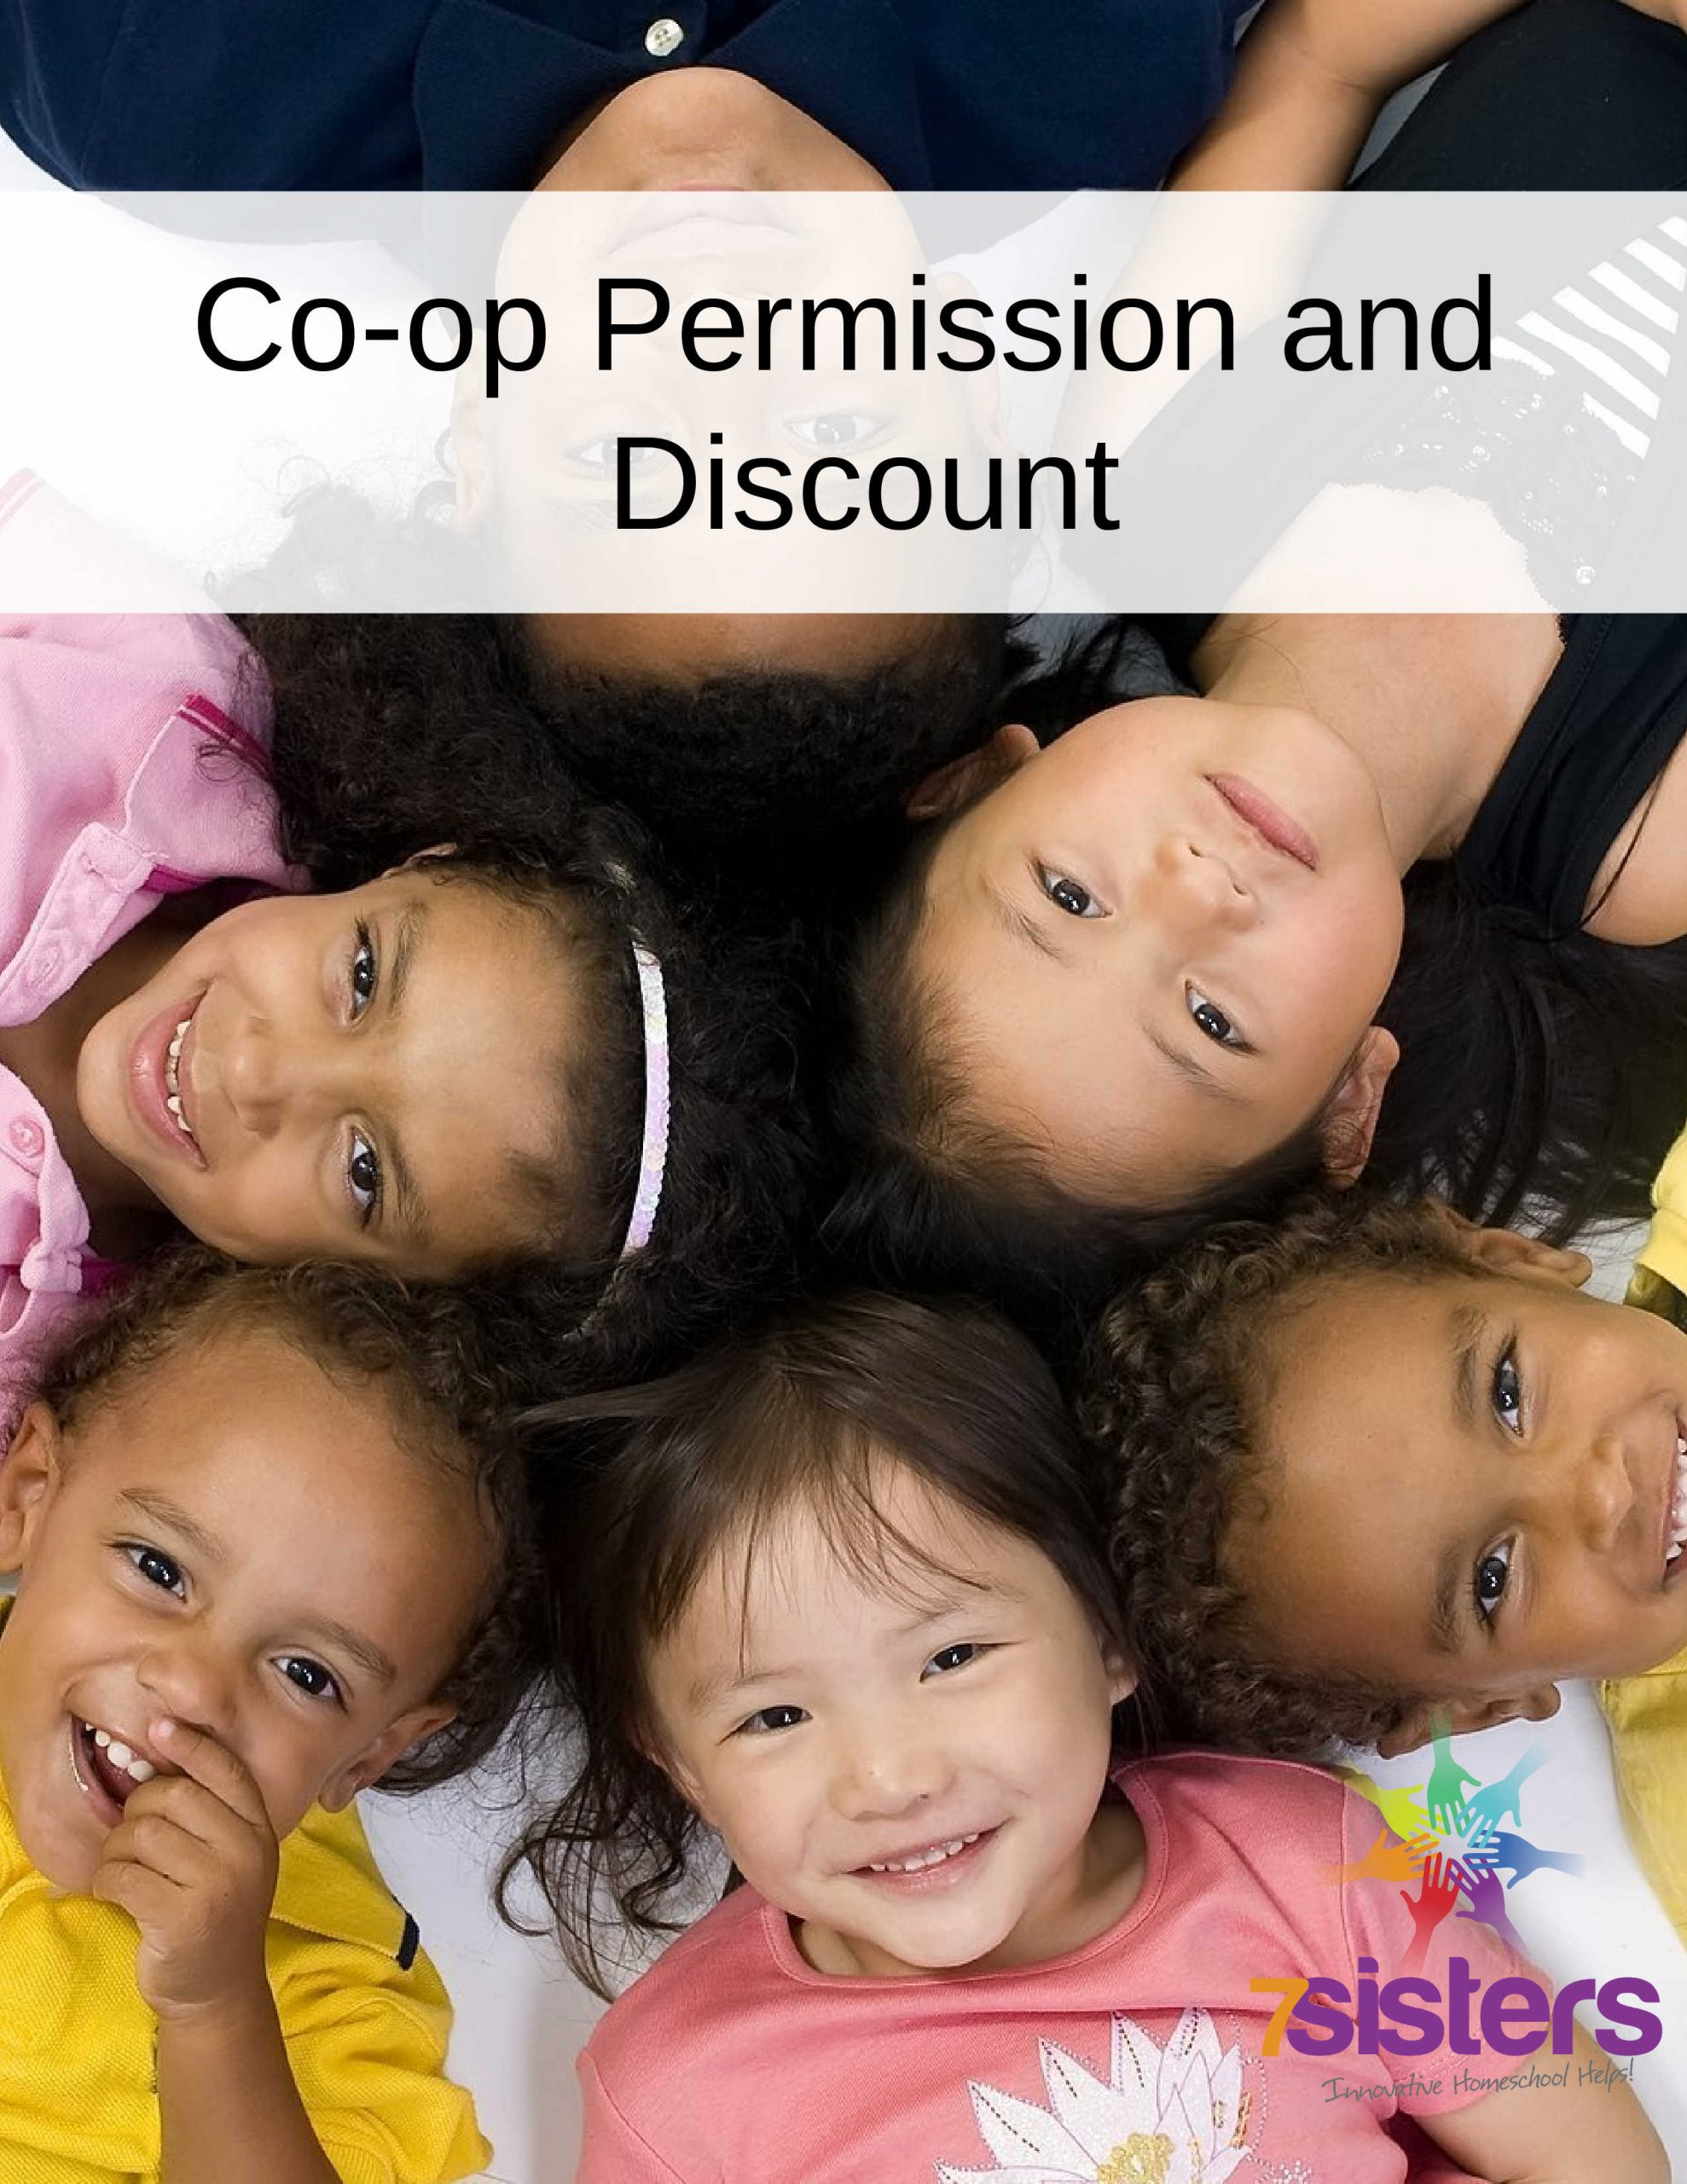 7Sisters co-op permission discount